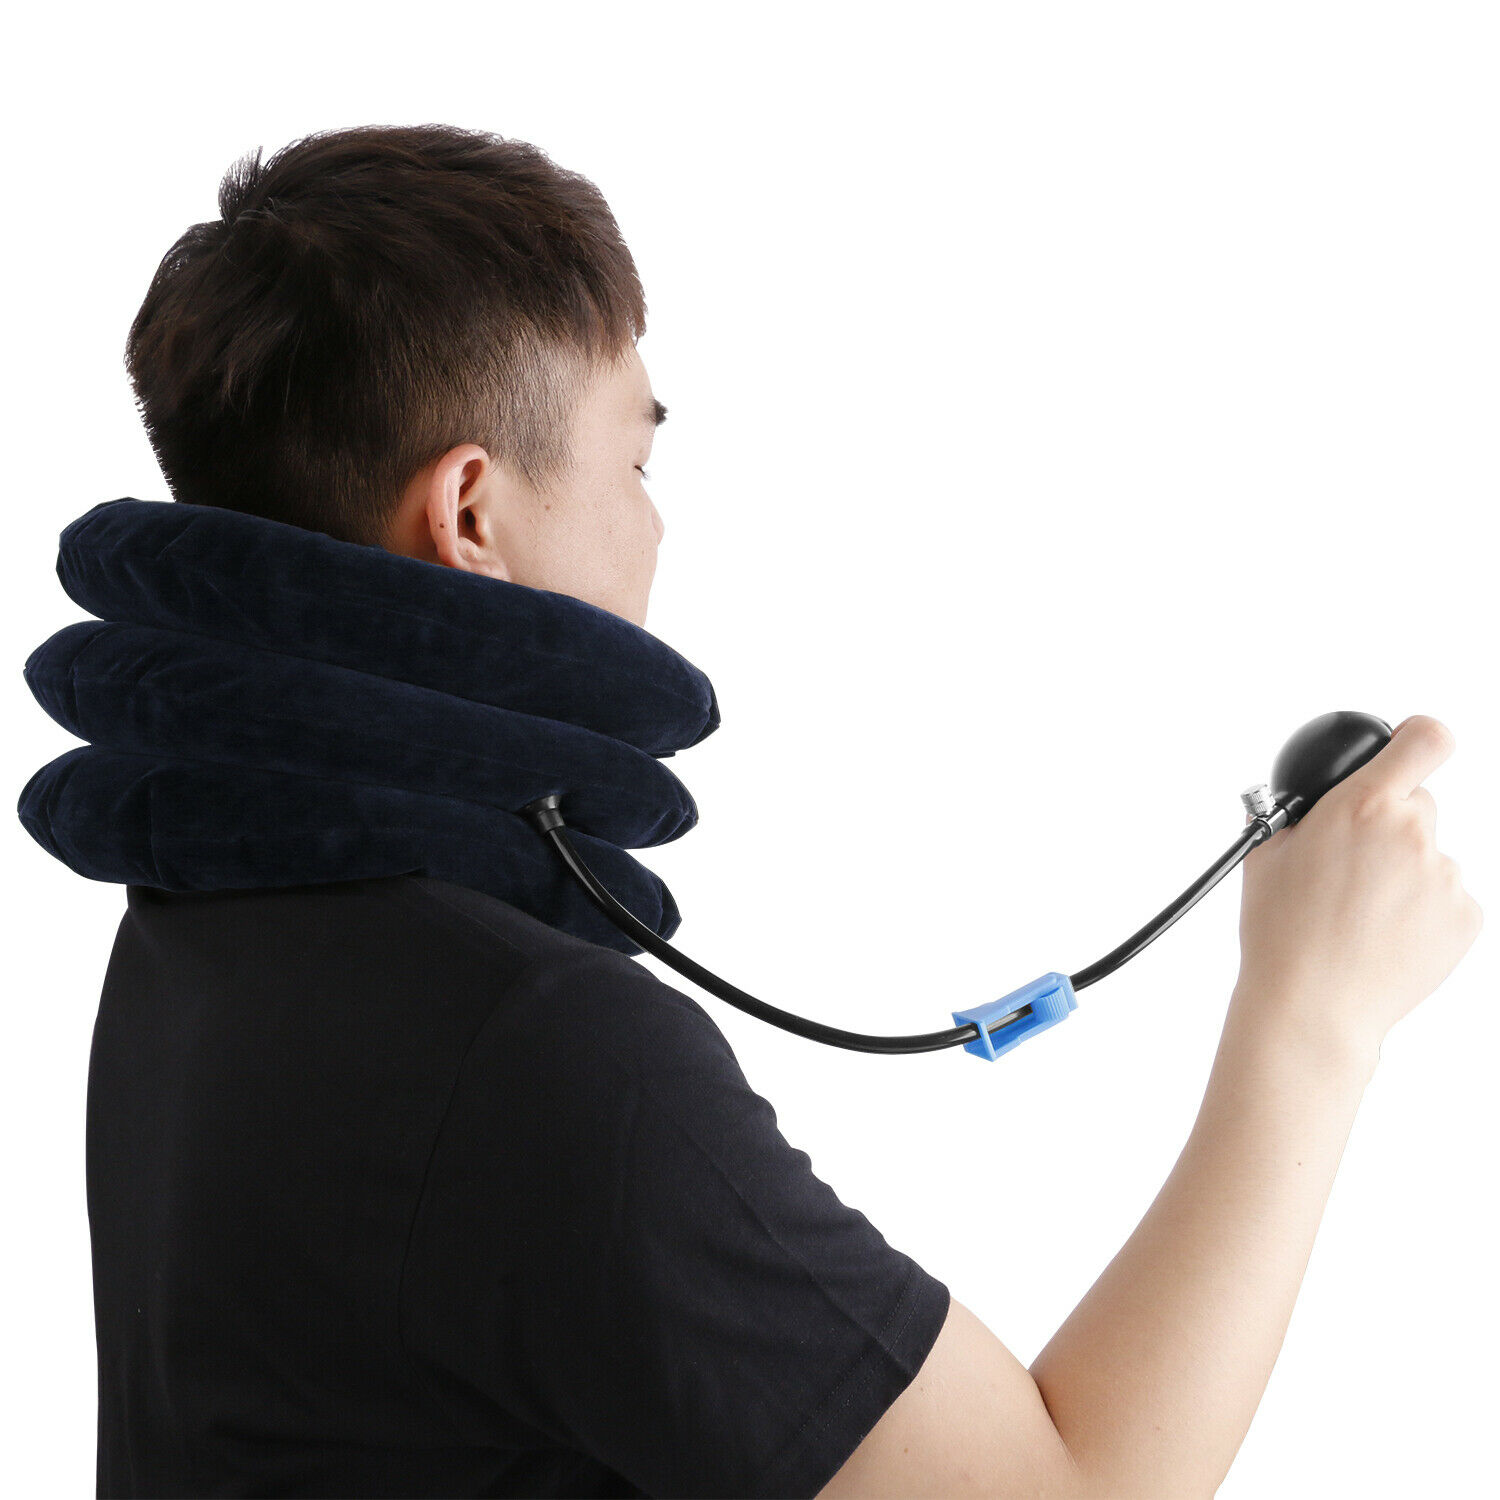 Cervical Neck Traction Device Collar Brace Support Pain Relife Stretcher Therapy Health & Beauty